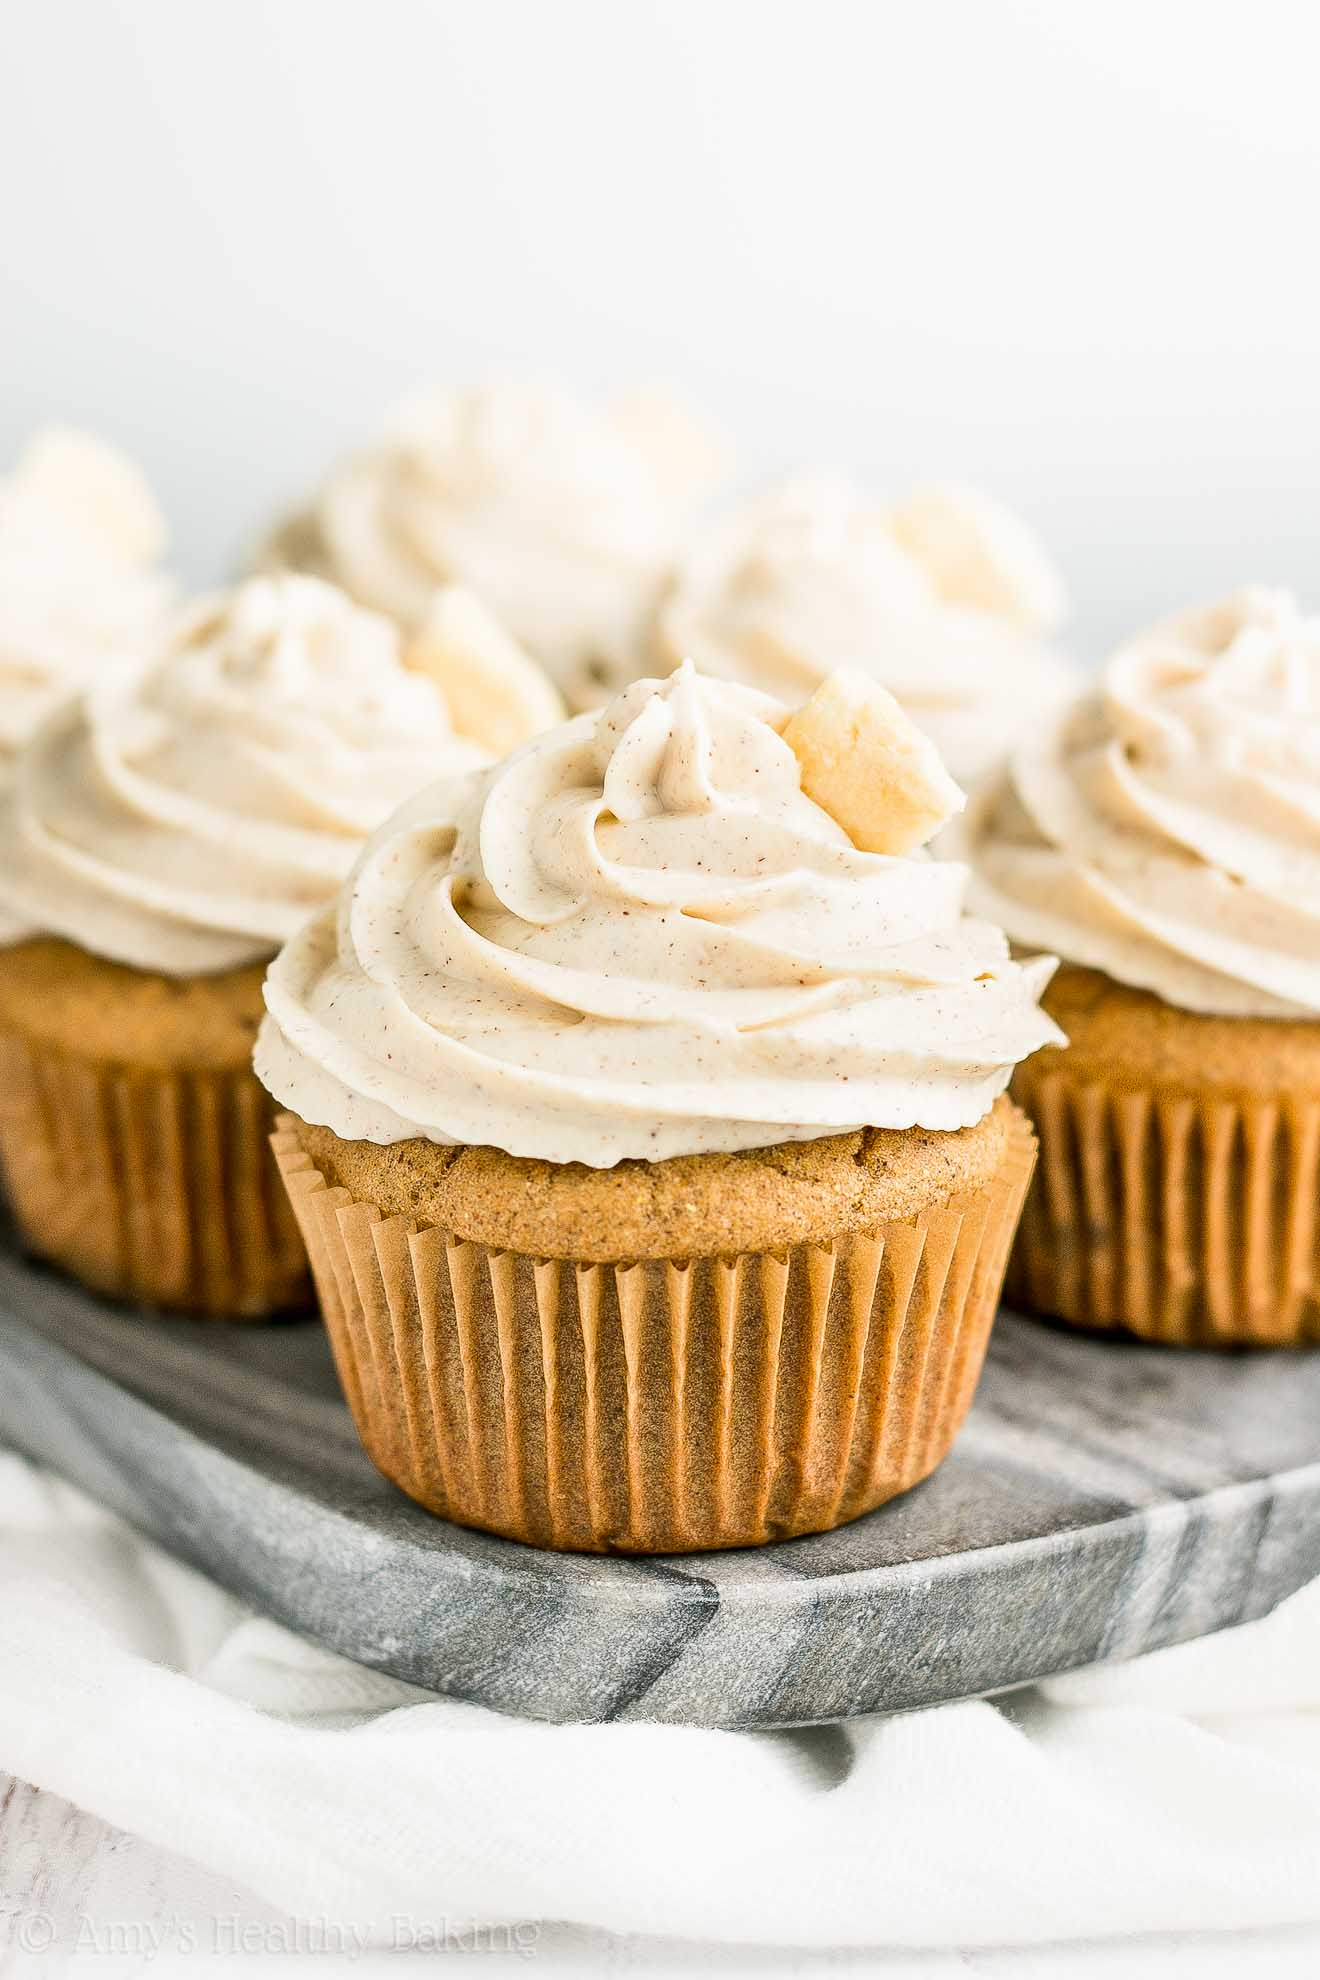 Healthy Gluten-Free Sugar-Free Cinnamon Apple Cupcakes